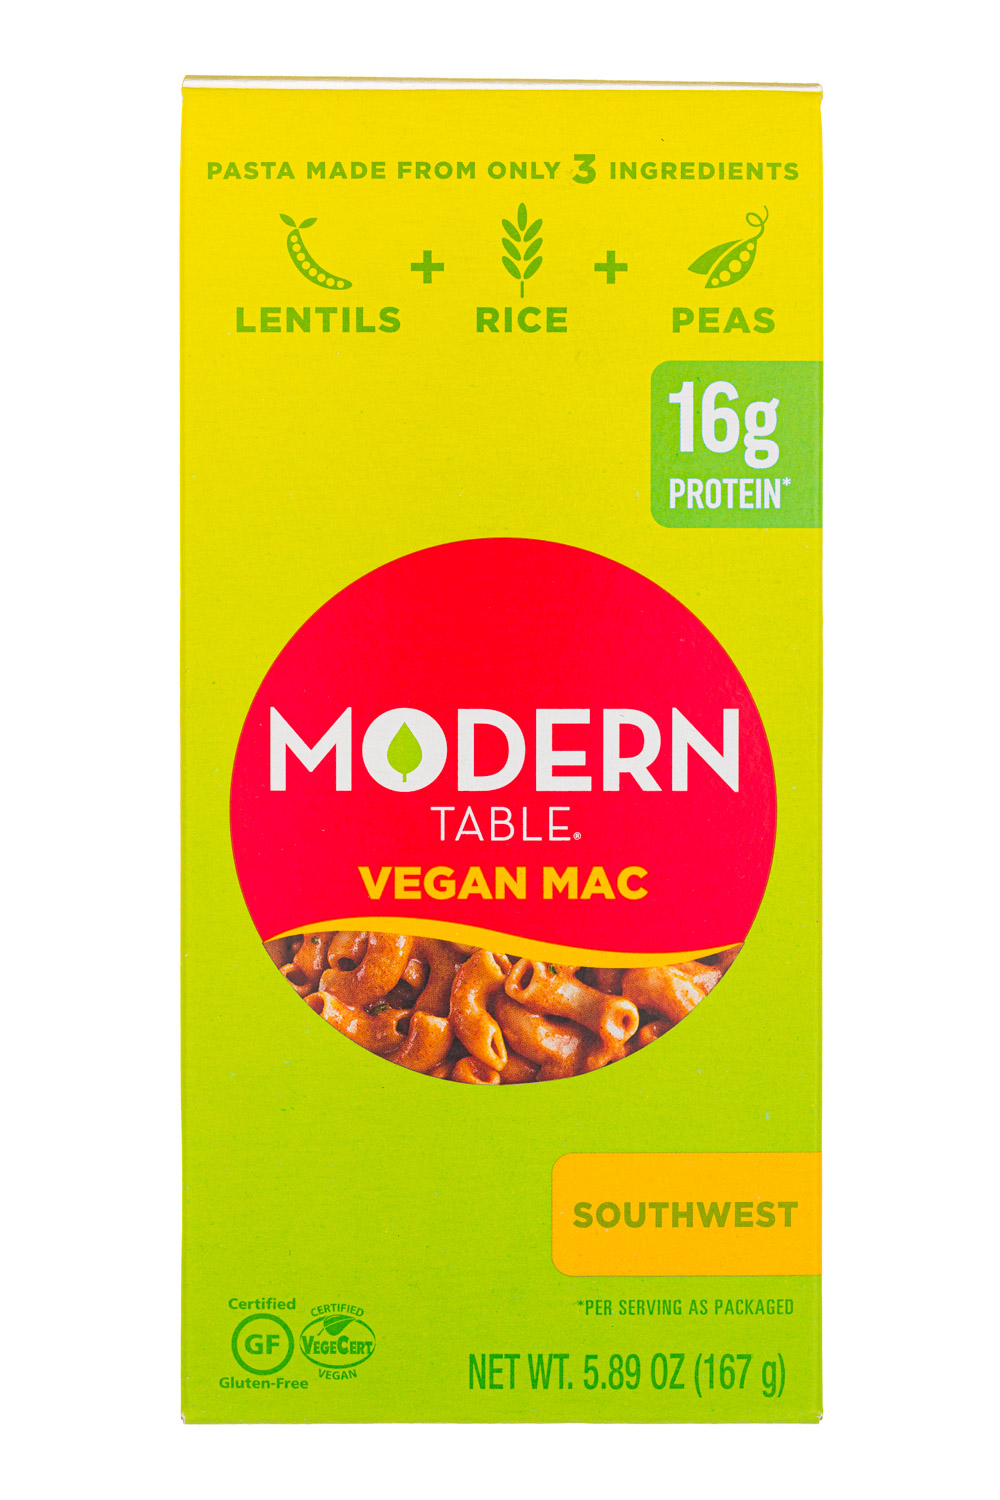 Vegan Mac: Southwest 2019